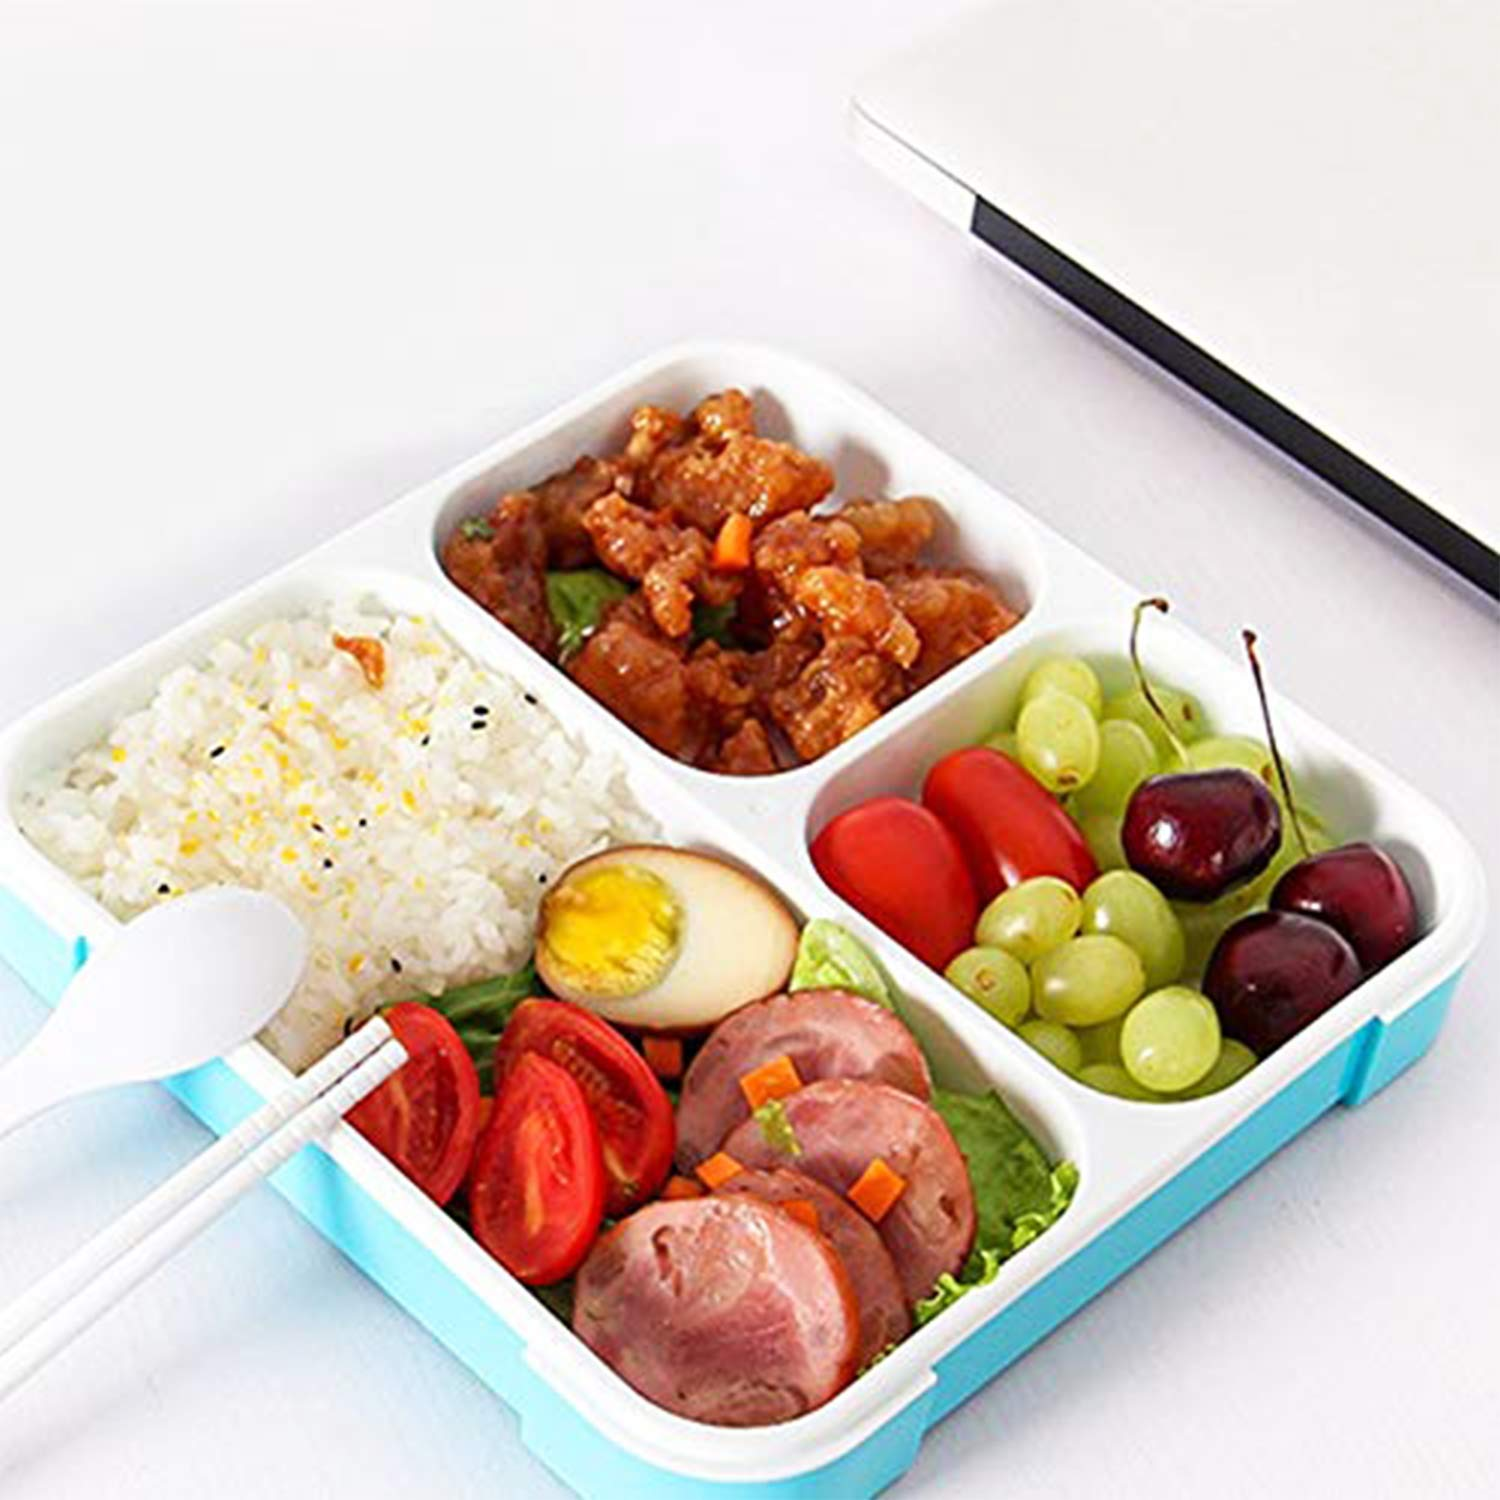 Mundal Plastic Lunch Box, Leakproof 3 Compartment Containers for Snacks, Meal, Tiffin-Box for Boys, Girls, Adults